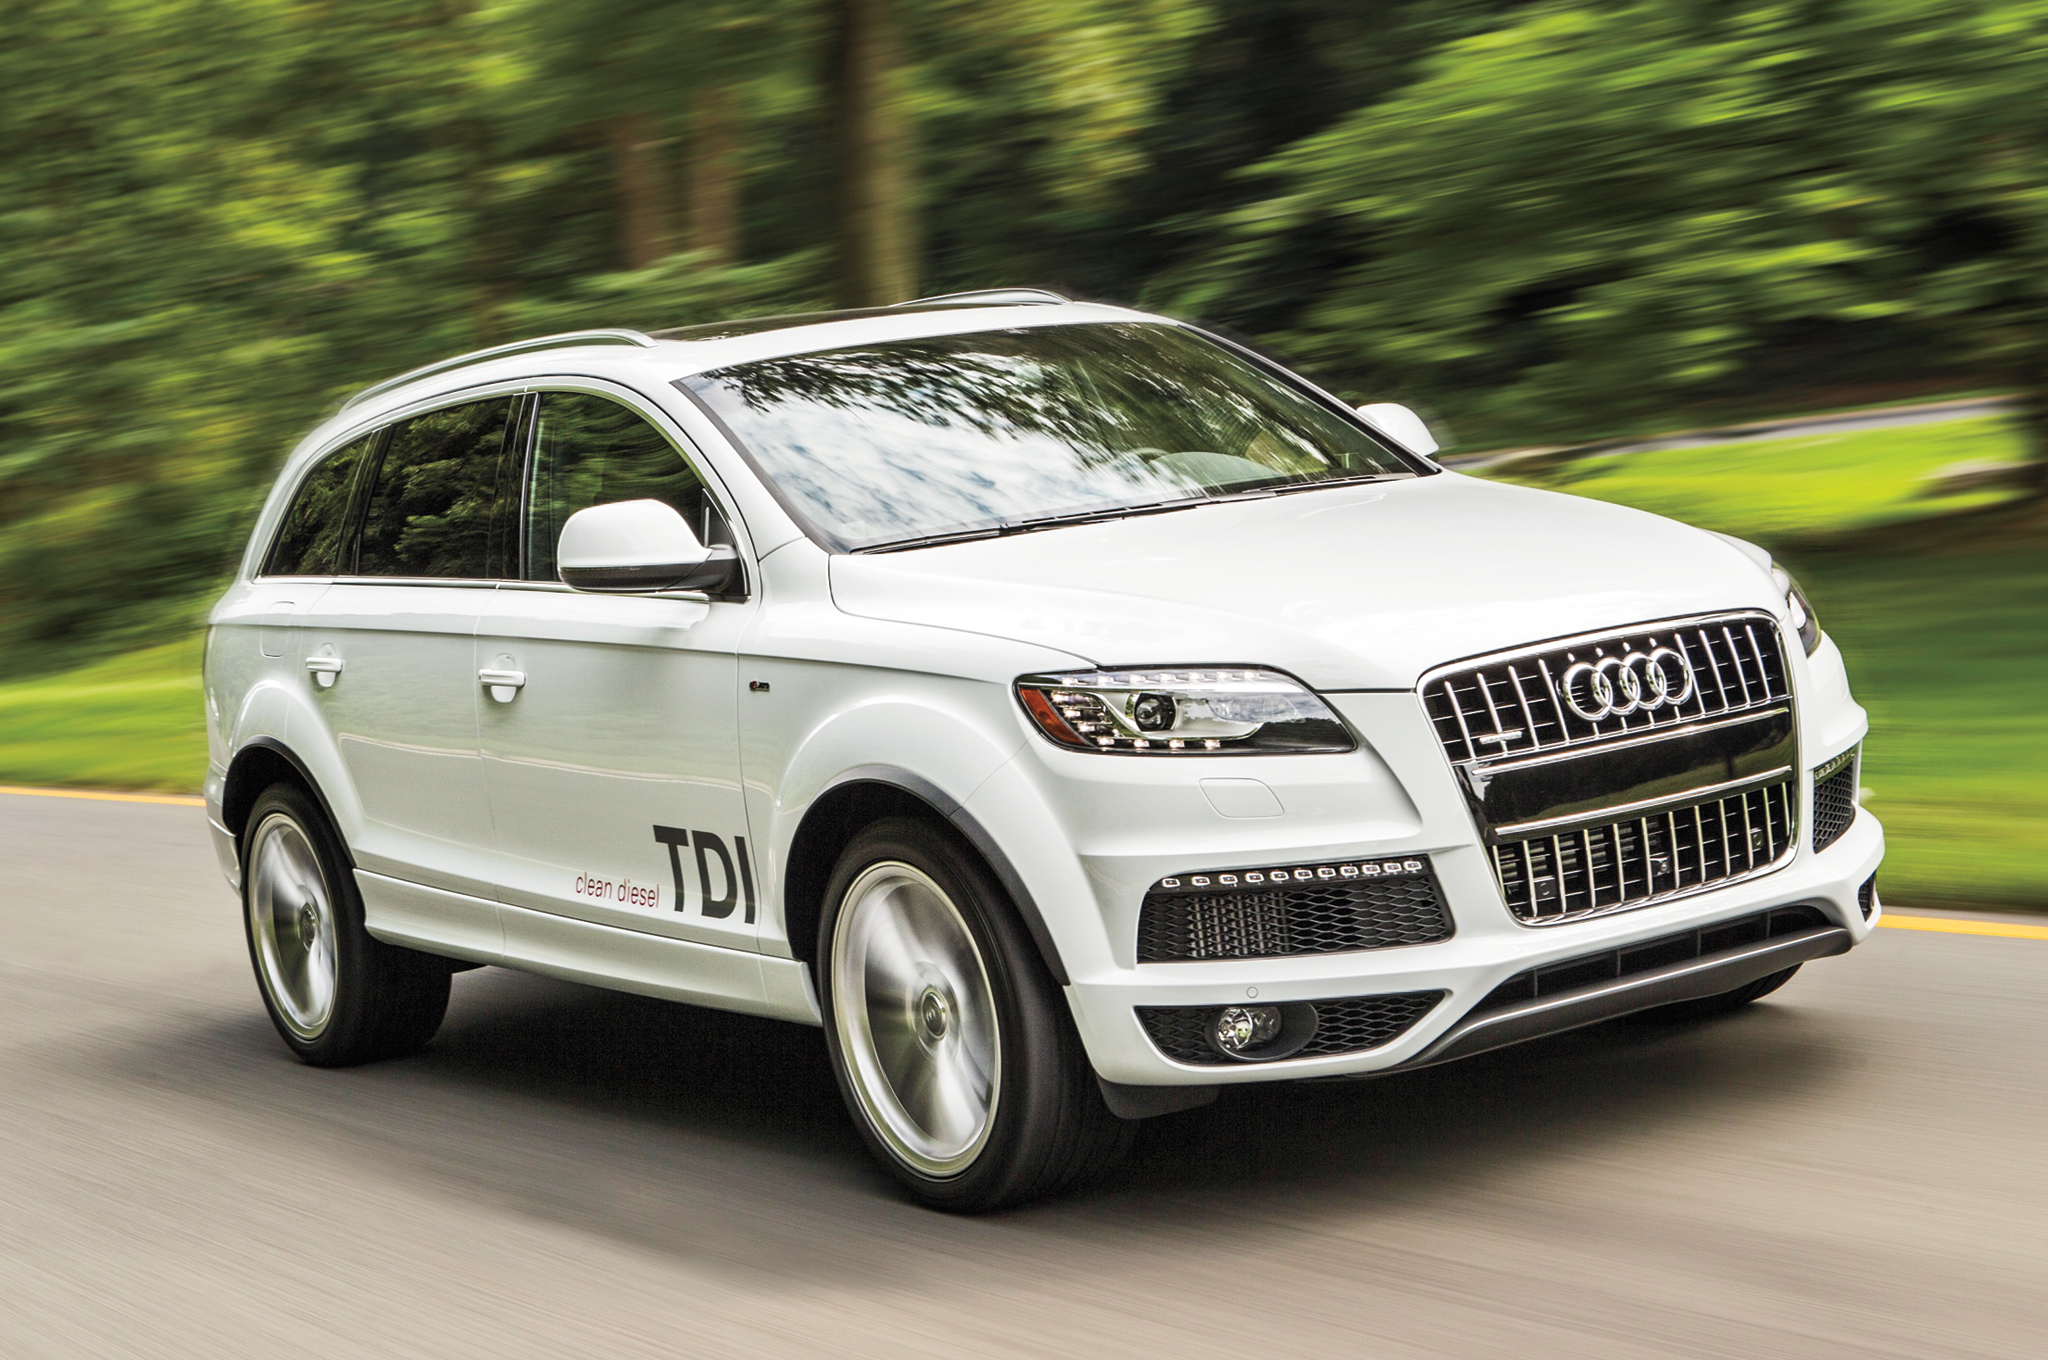 Audi Suv Q7 New Car Release Information